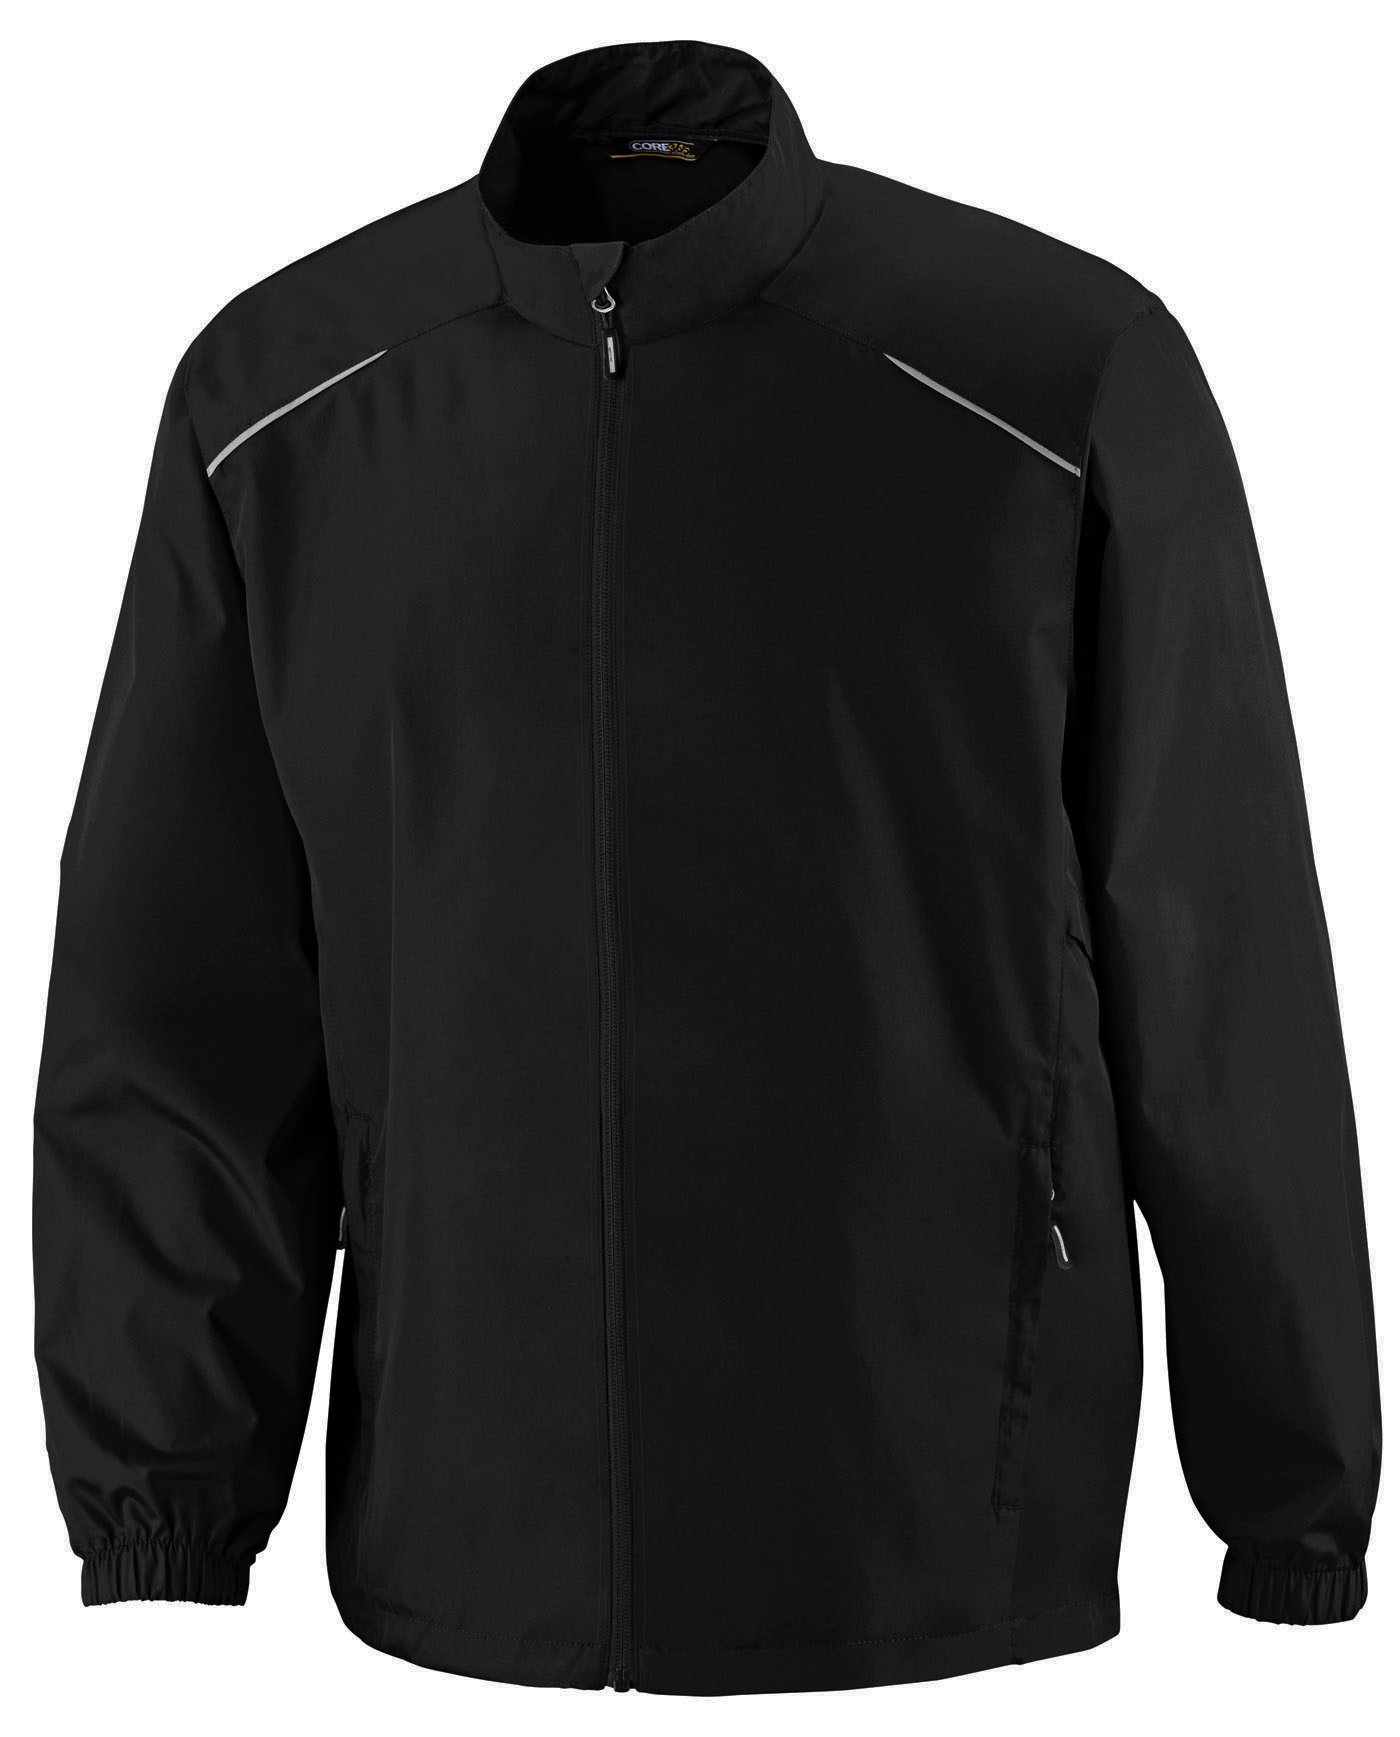 North End Core365 Big and Tall Unlined Lightweight Jacket (Black 4X-T)